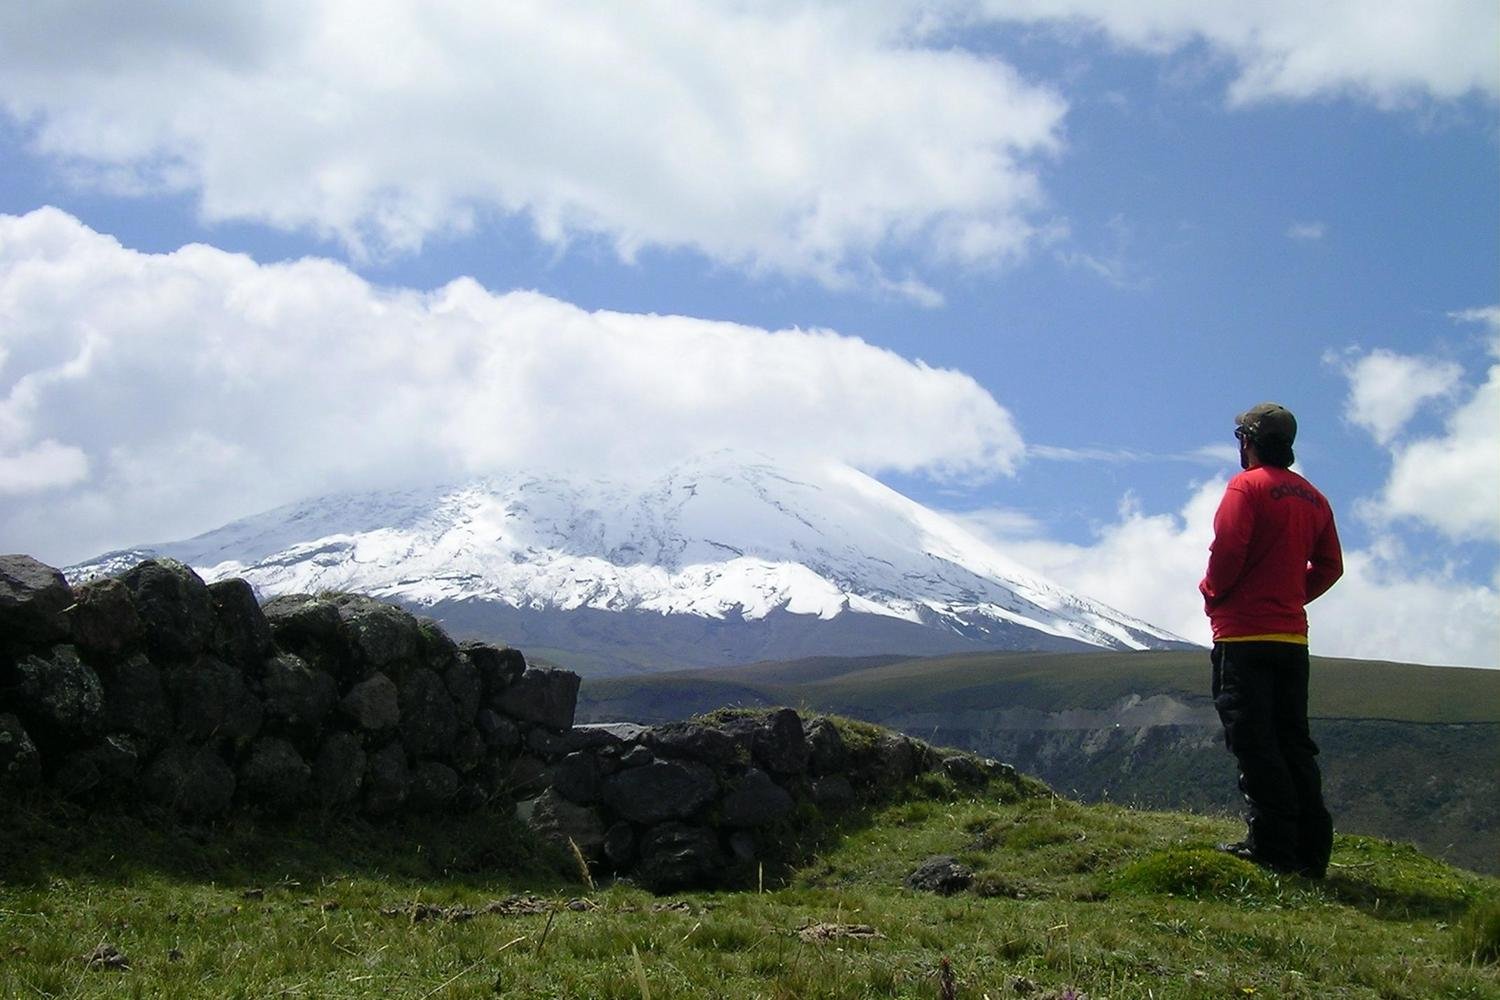 Looking out over the Cotopaxi volcano